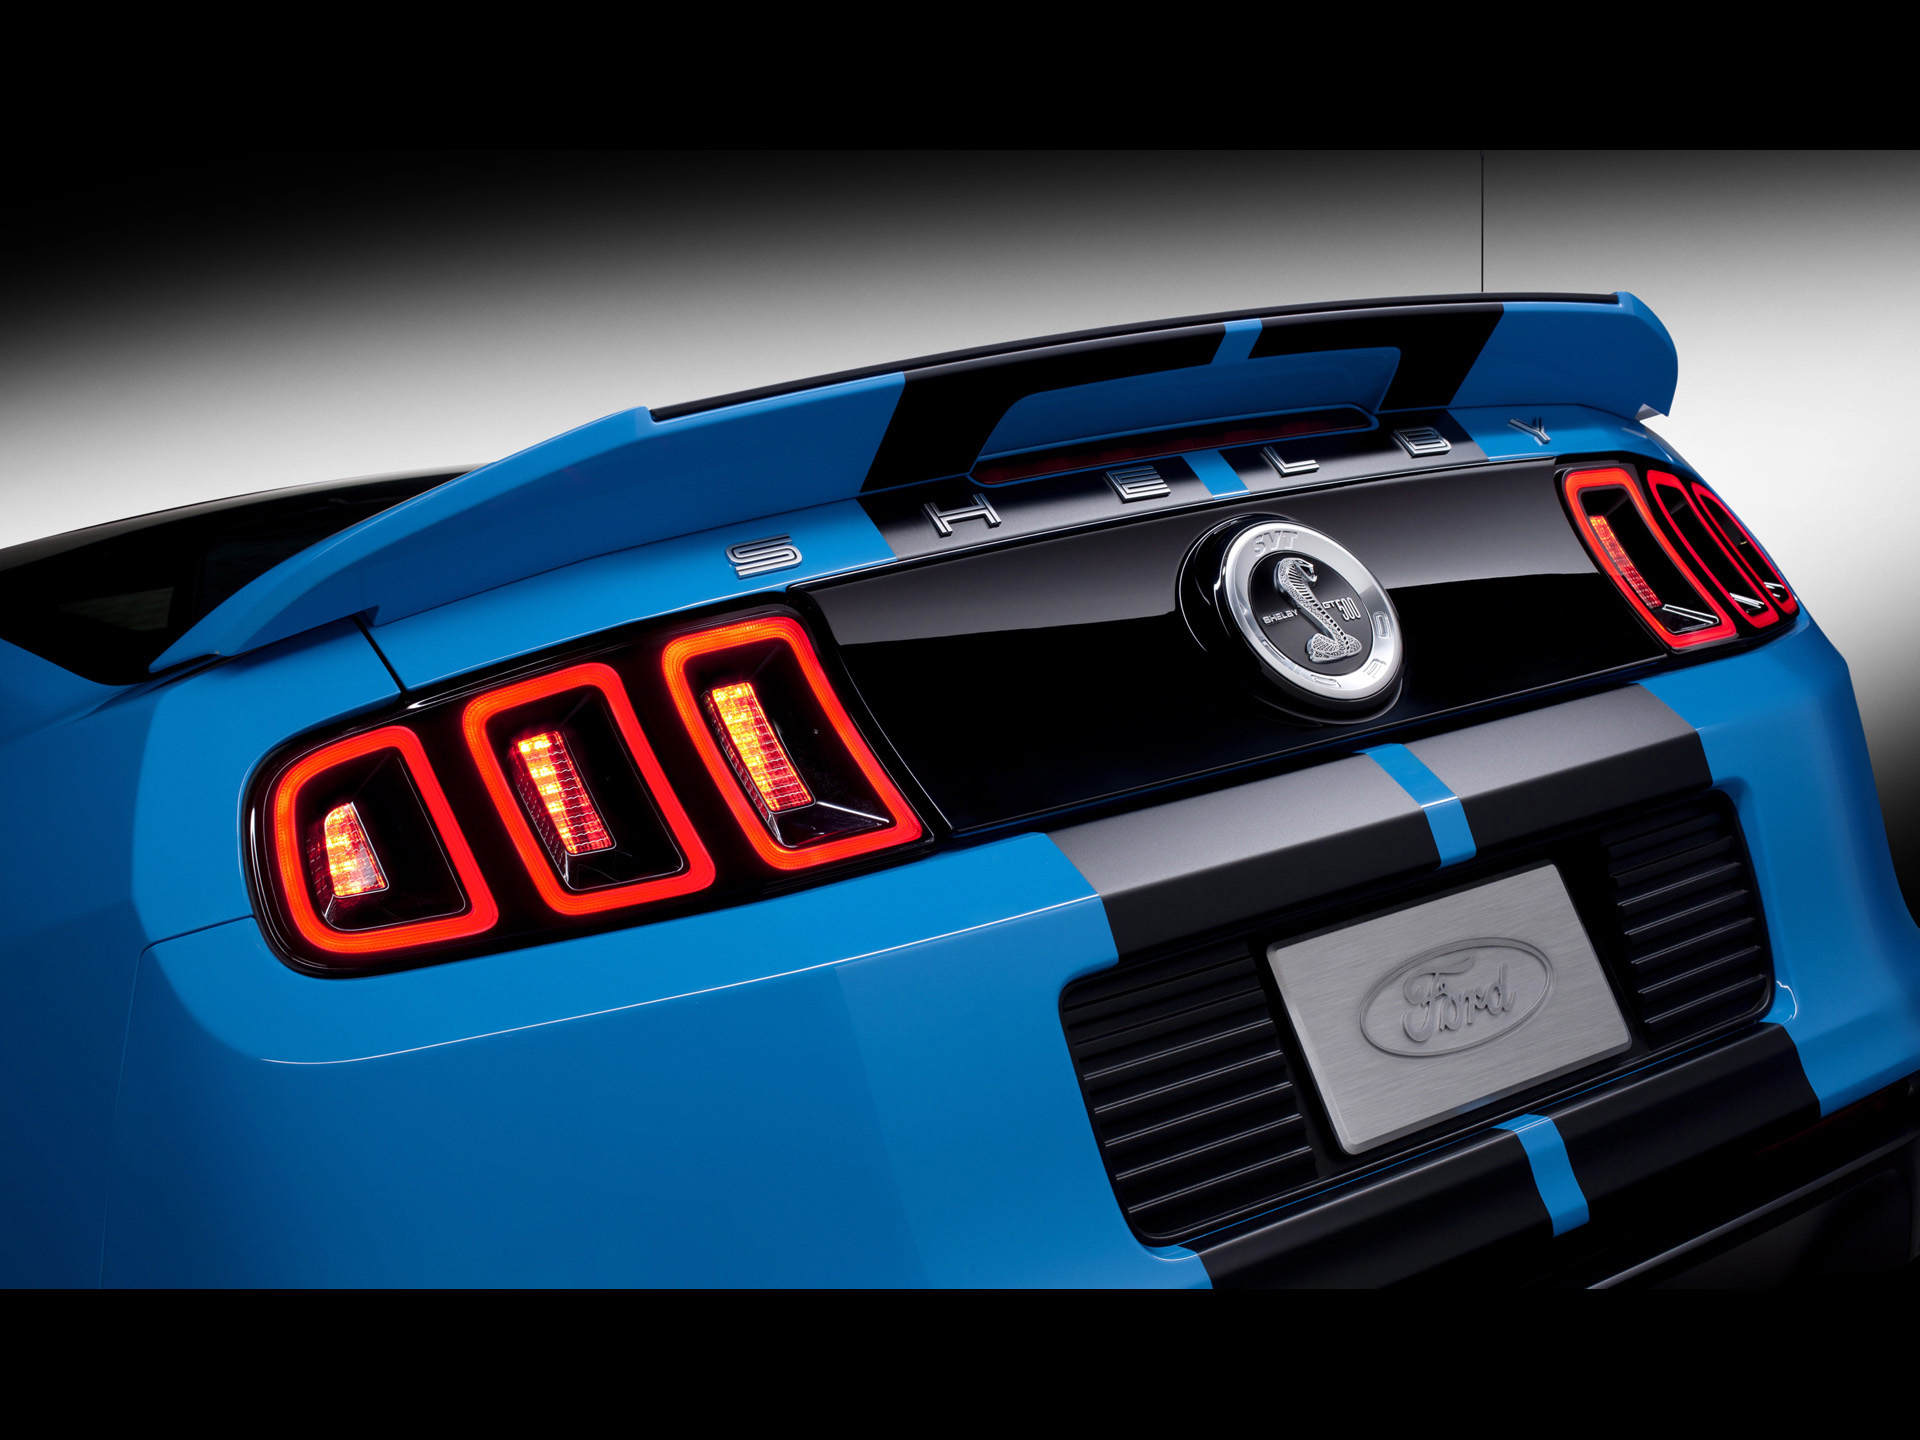 2013 Blue Shelby GT500 Taillights wallpapers 2013 Blue Shelby GT500 1920x1440